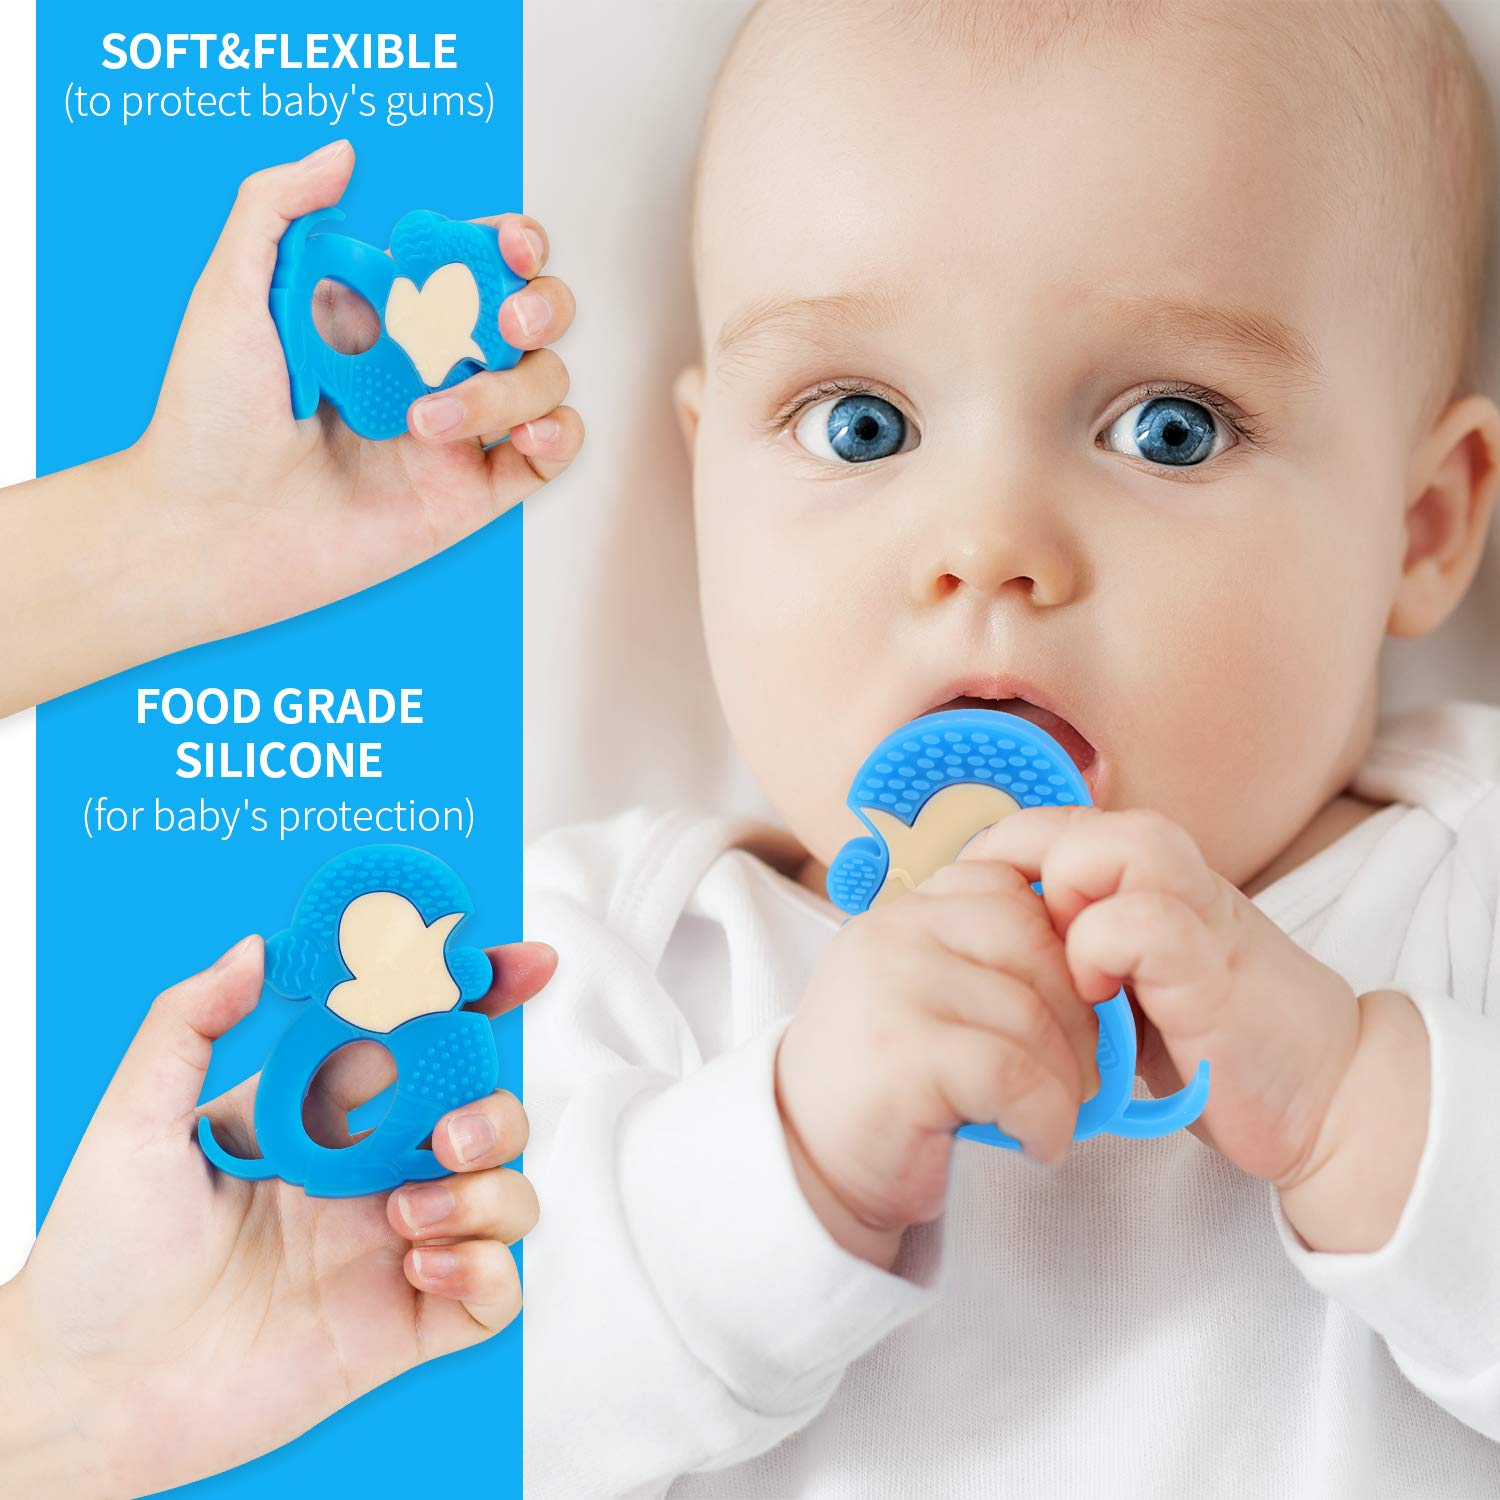 Miracle Silicone Monkey Teeth Chew Toys BPA Free Baby Bath Toys 6-12 Month Teether Toy